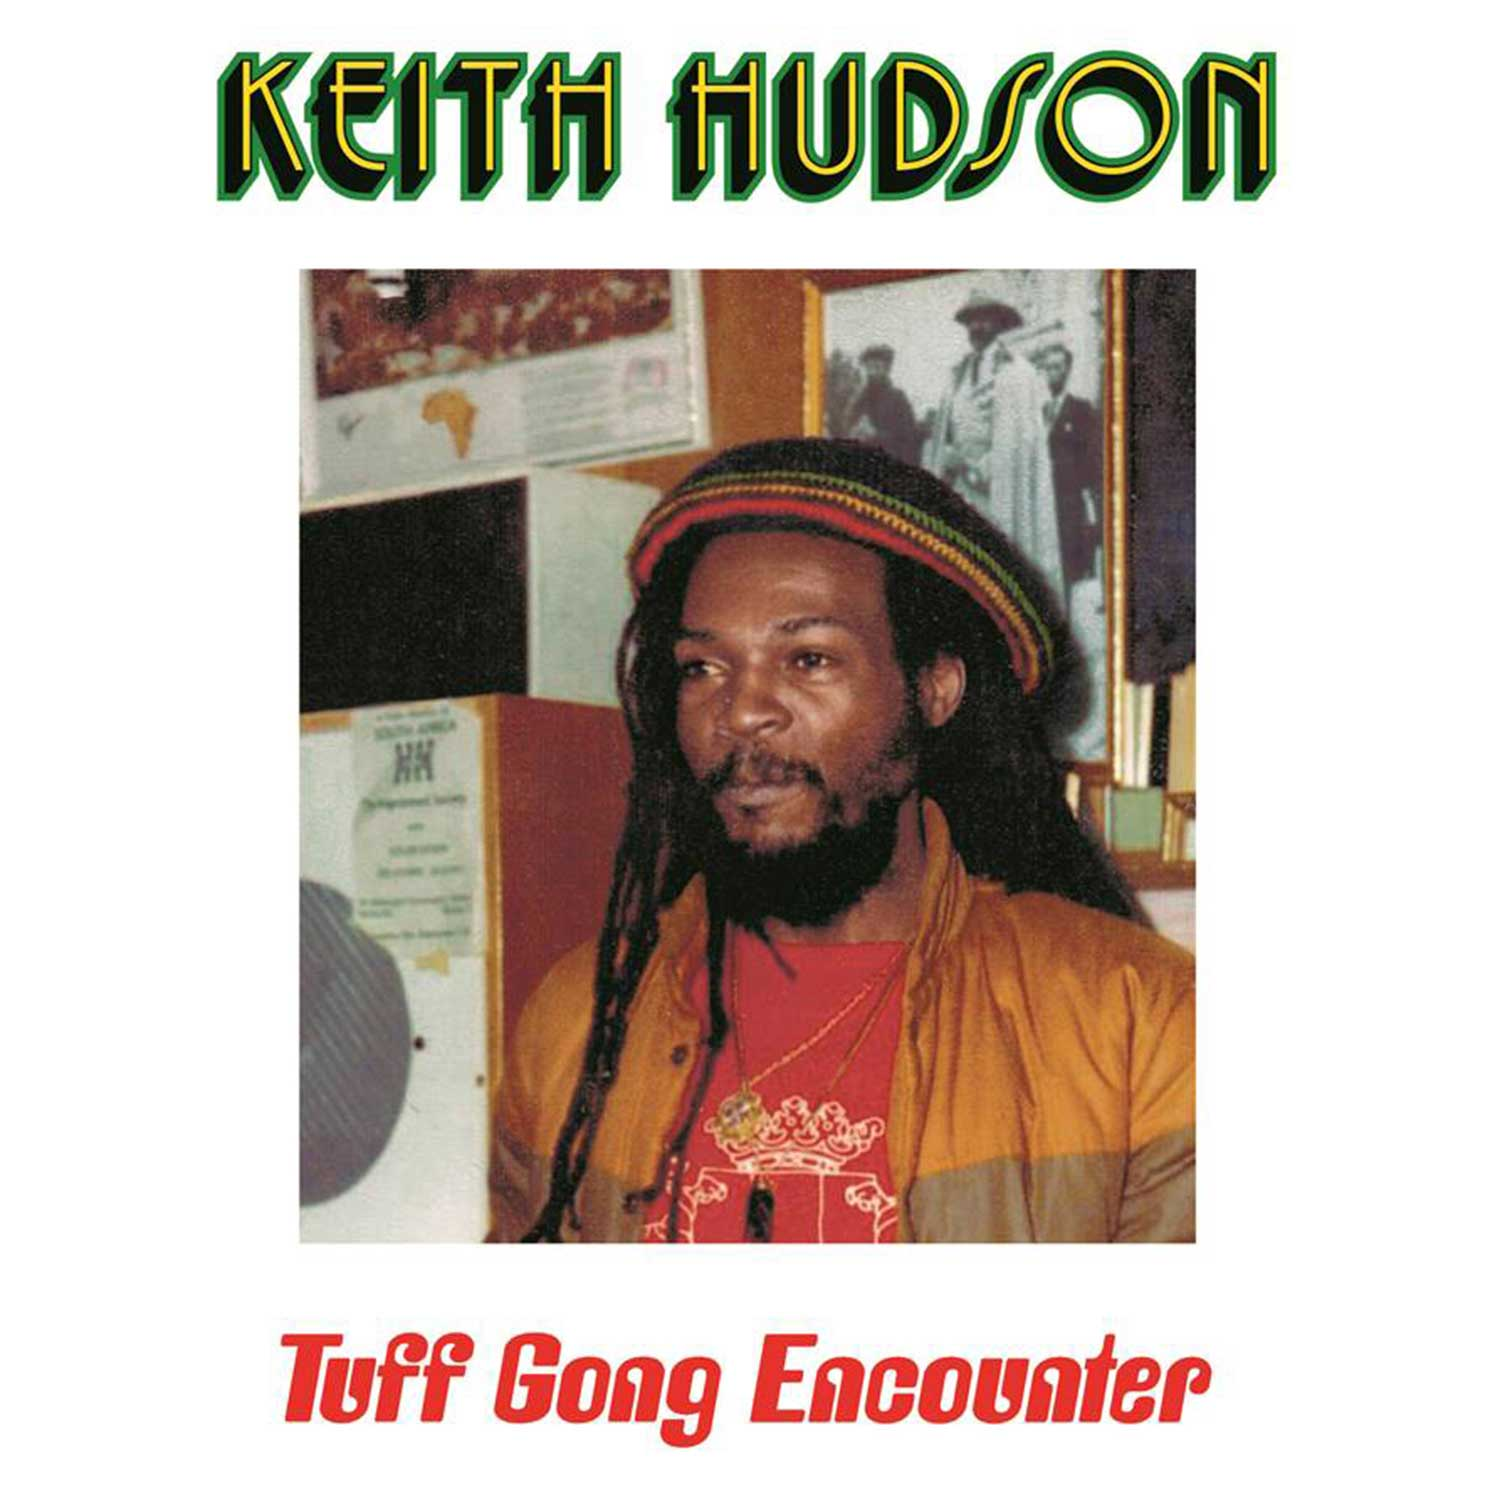 Tuff Gong Encounter – Keith Hudson